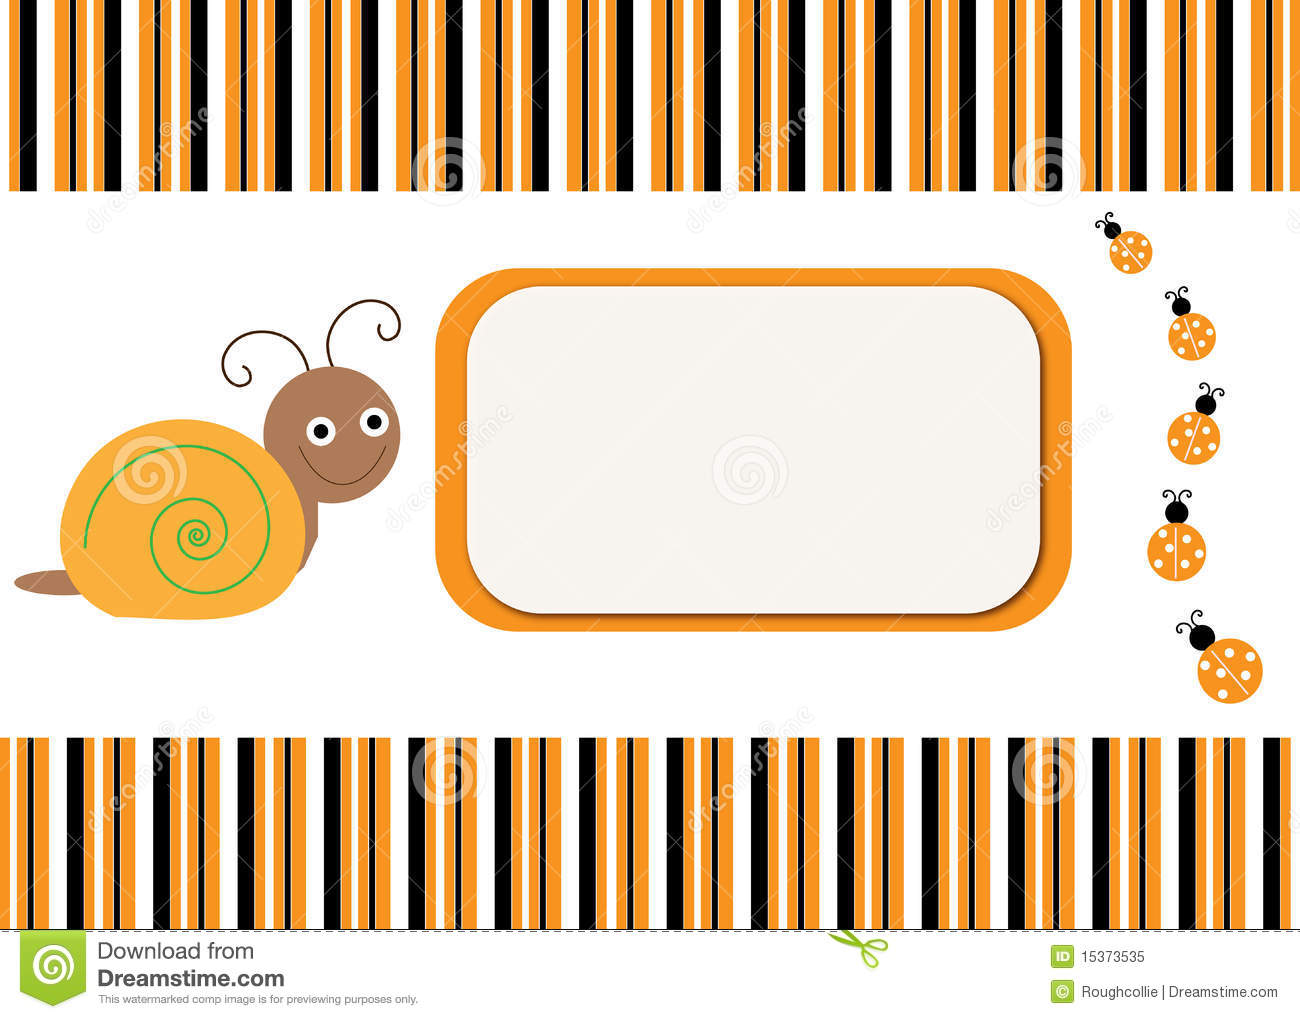 Snail u0026 Ladybug Card Background Royalty Free Stock Photo - Image ...